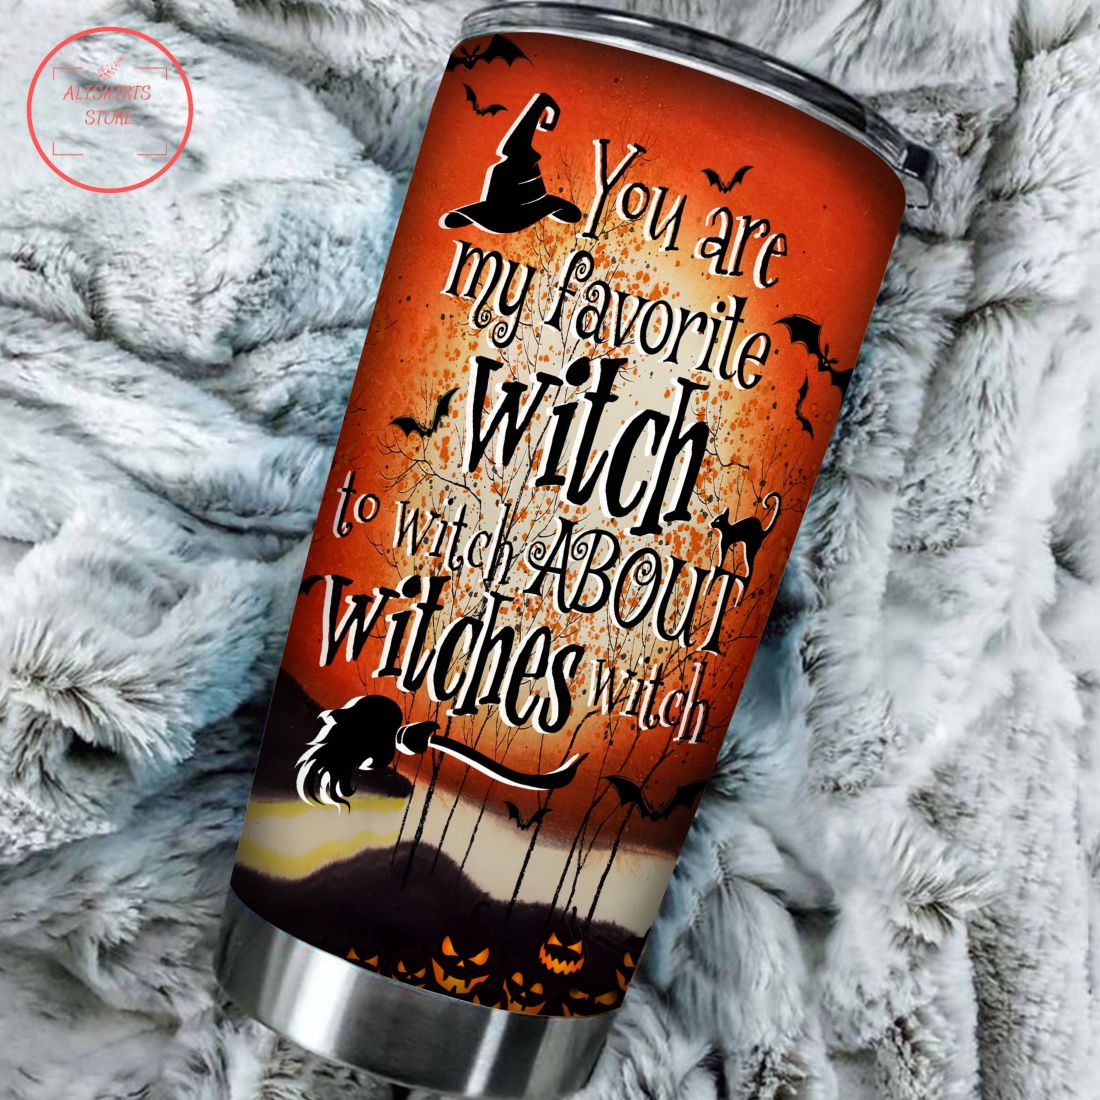 My favorite witch to witch Personalized Halloween Tumbler